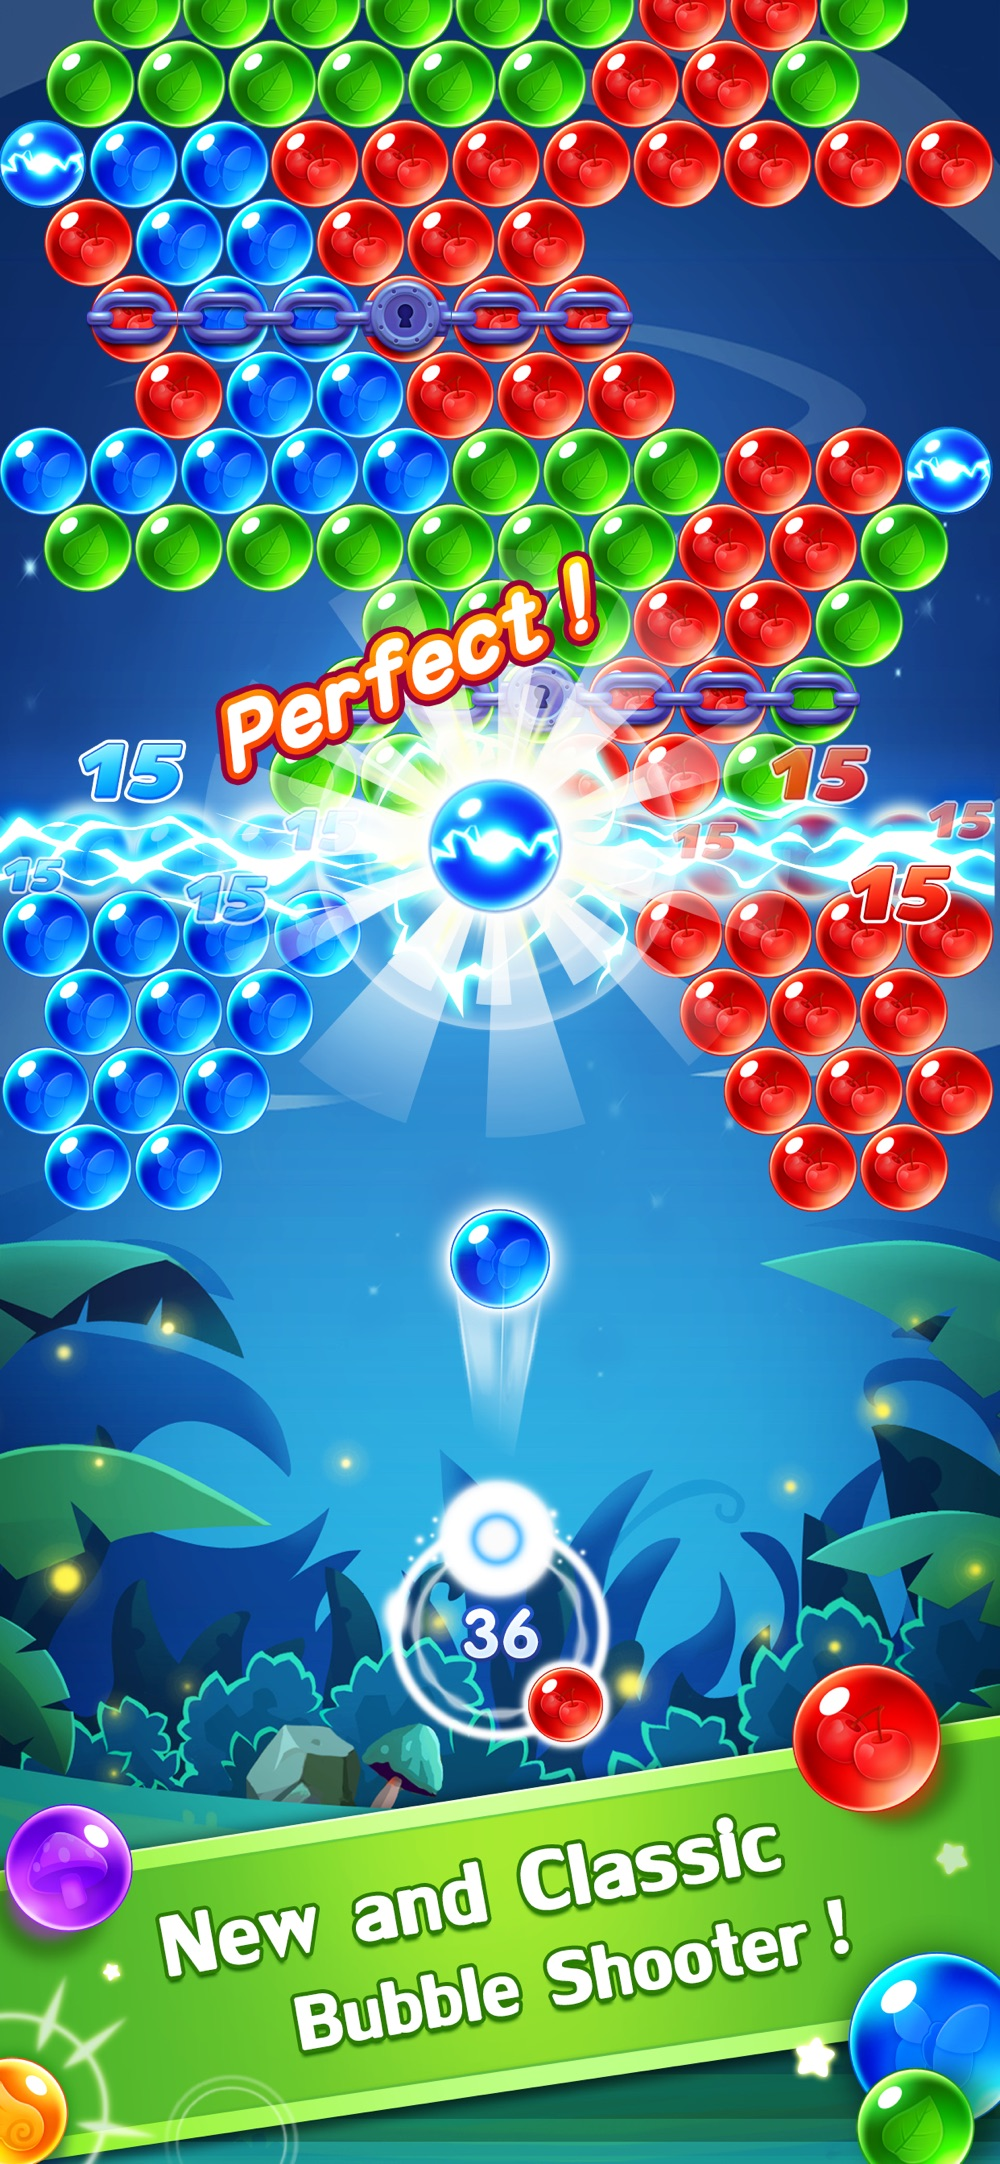 Bubble Shooter Genies Cheat Codes